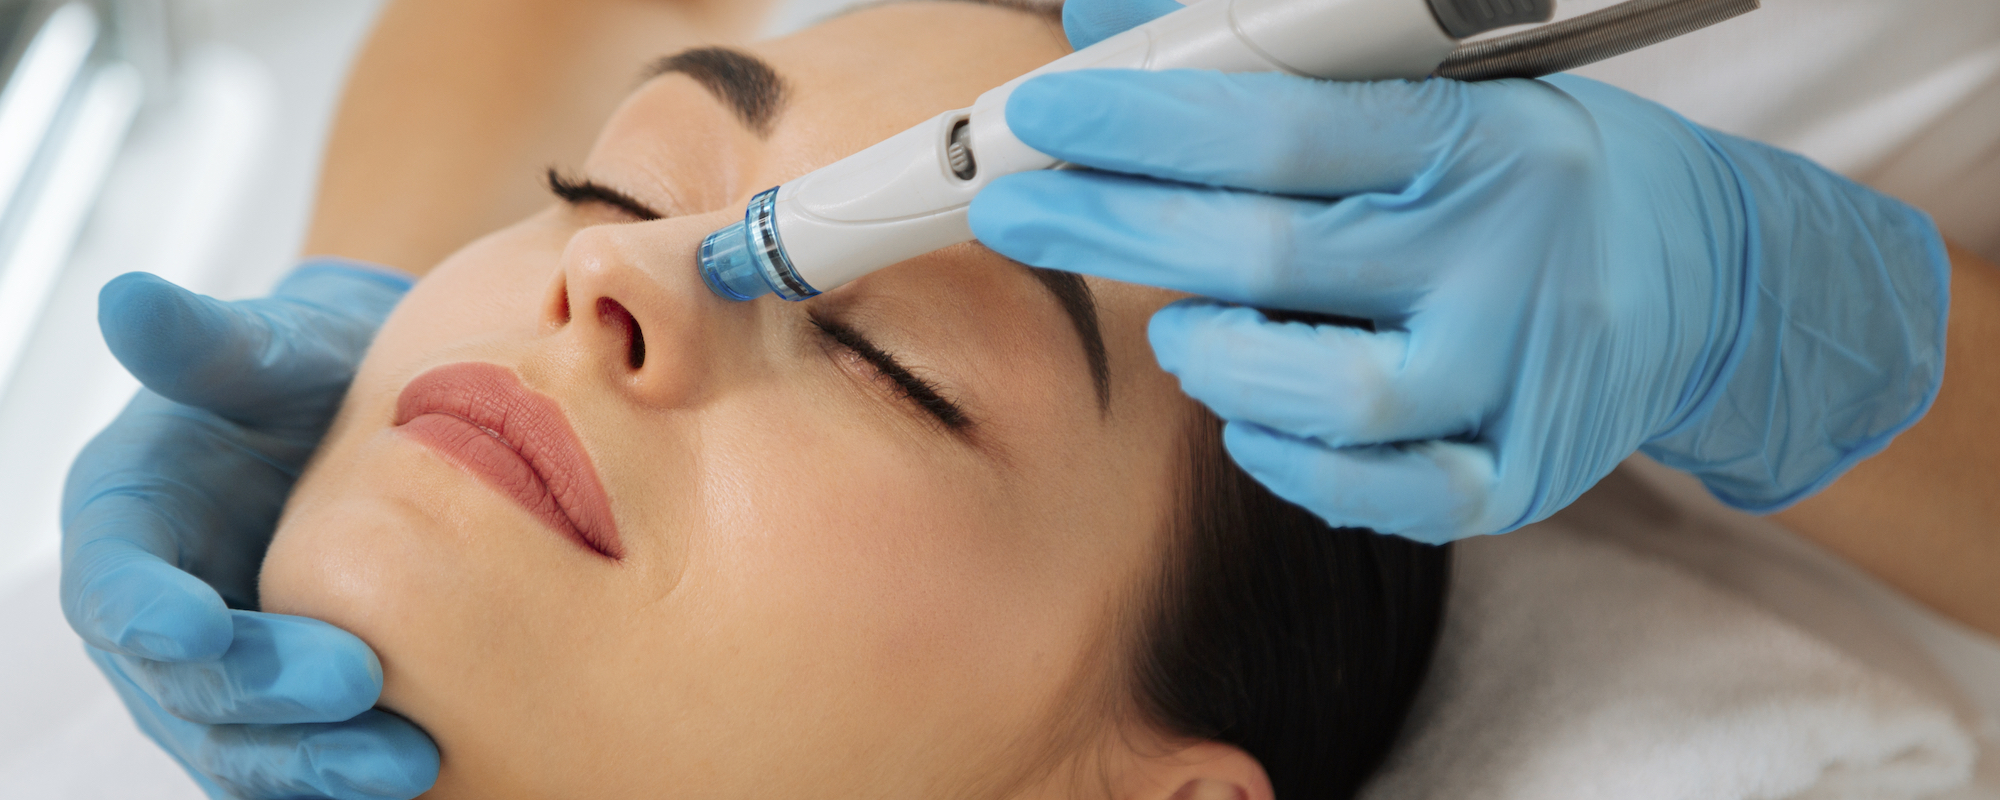 Everything You Need To Know About HydraFacial's